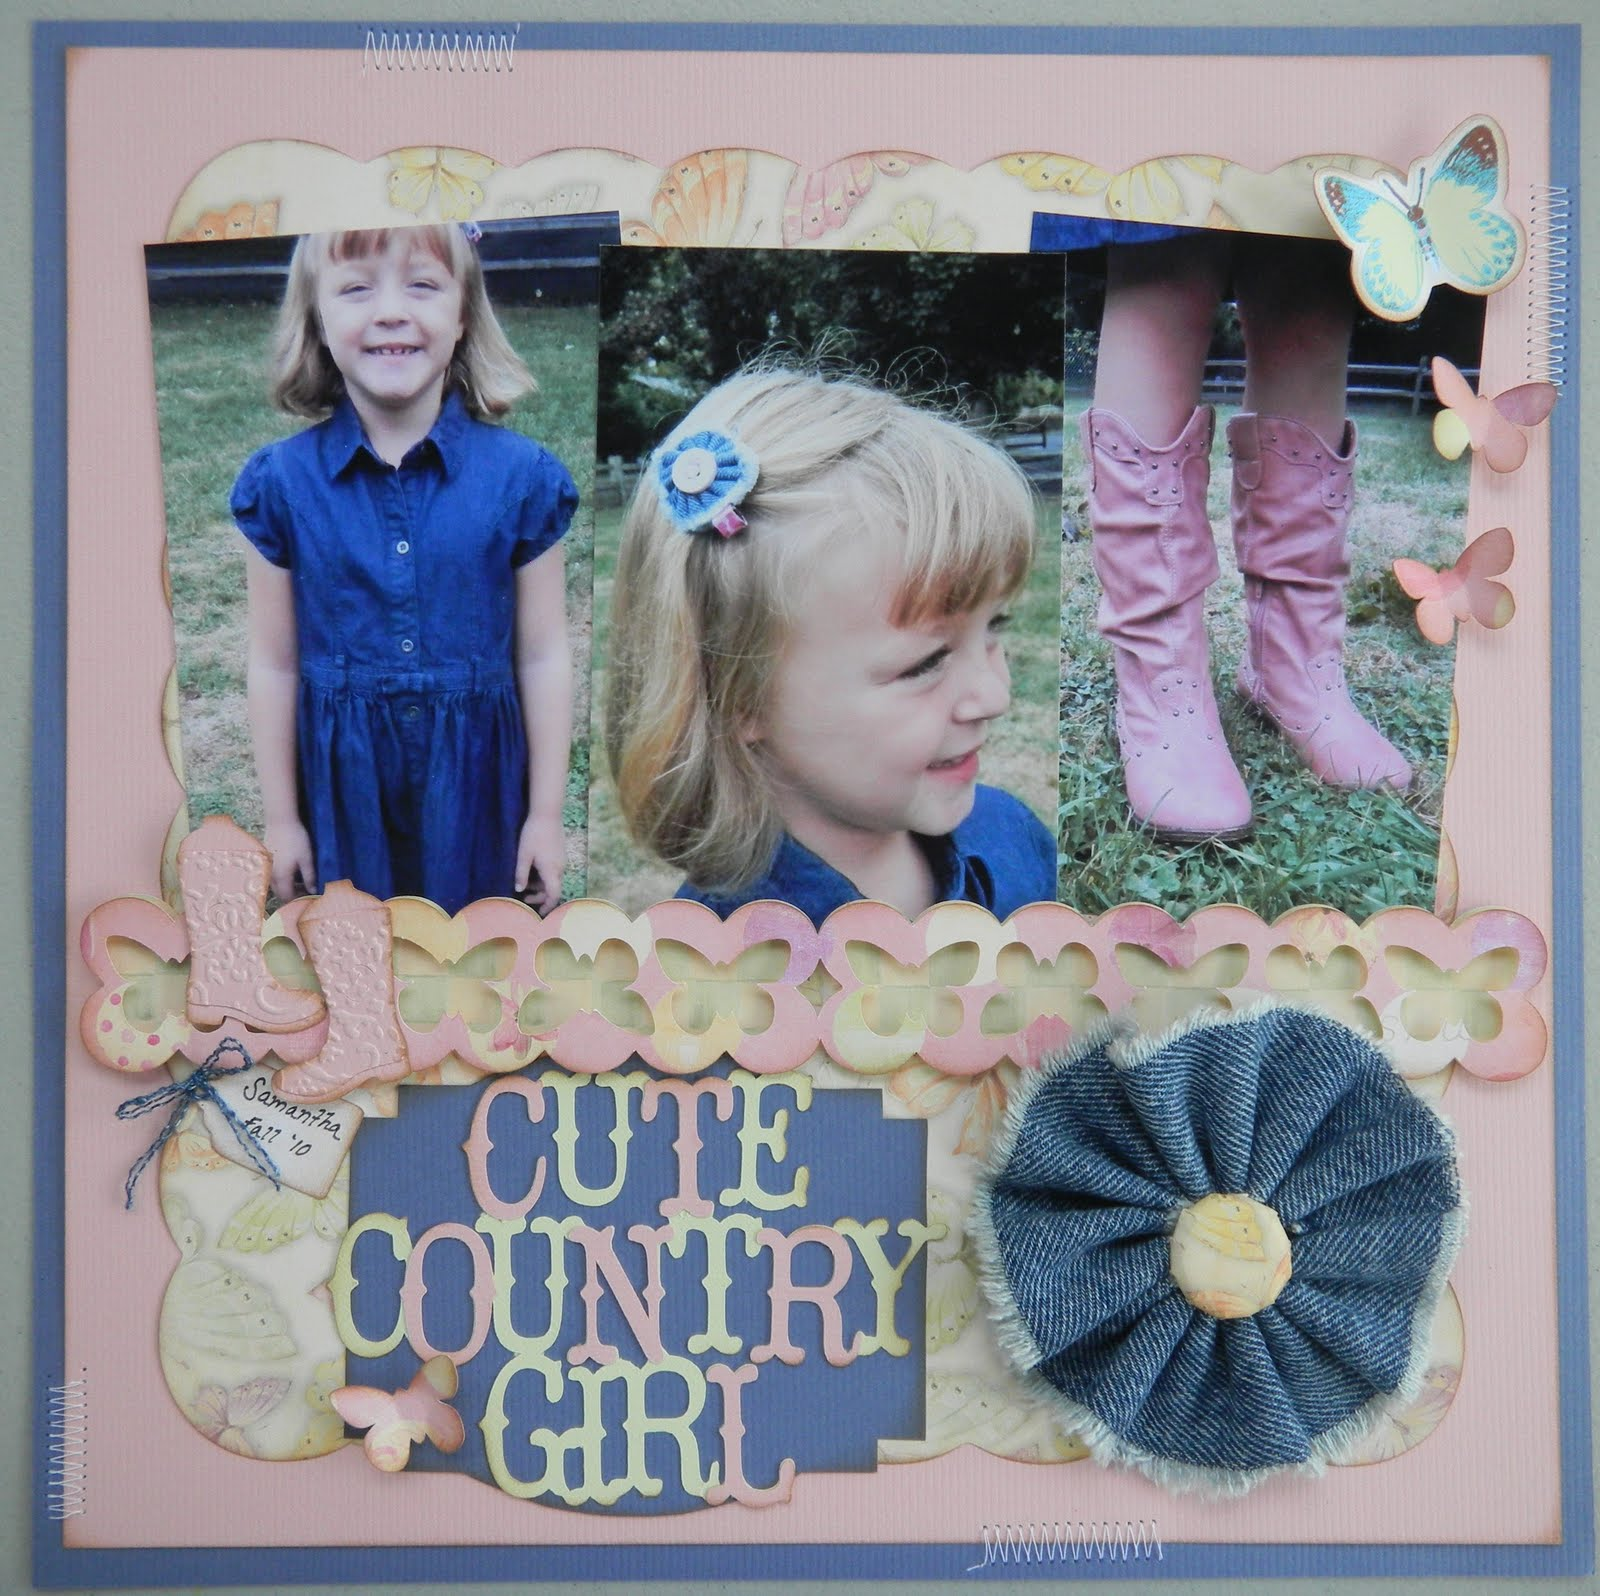 doin a country girl